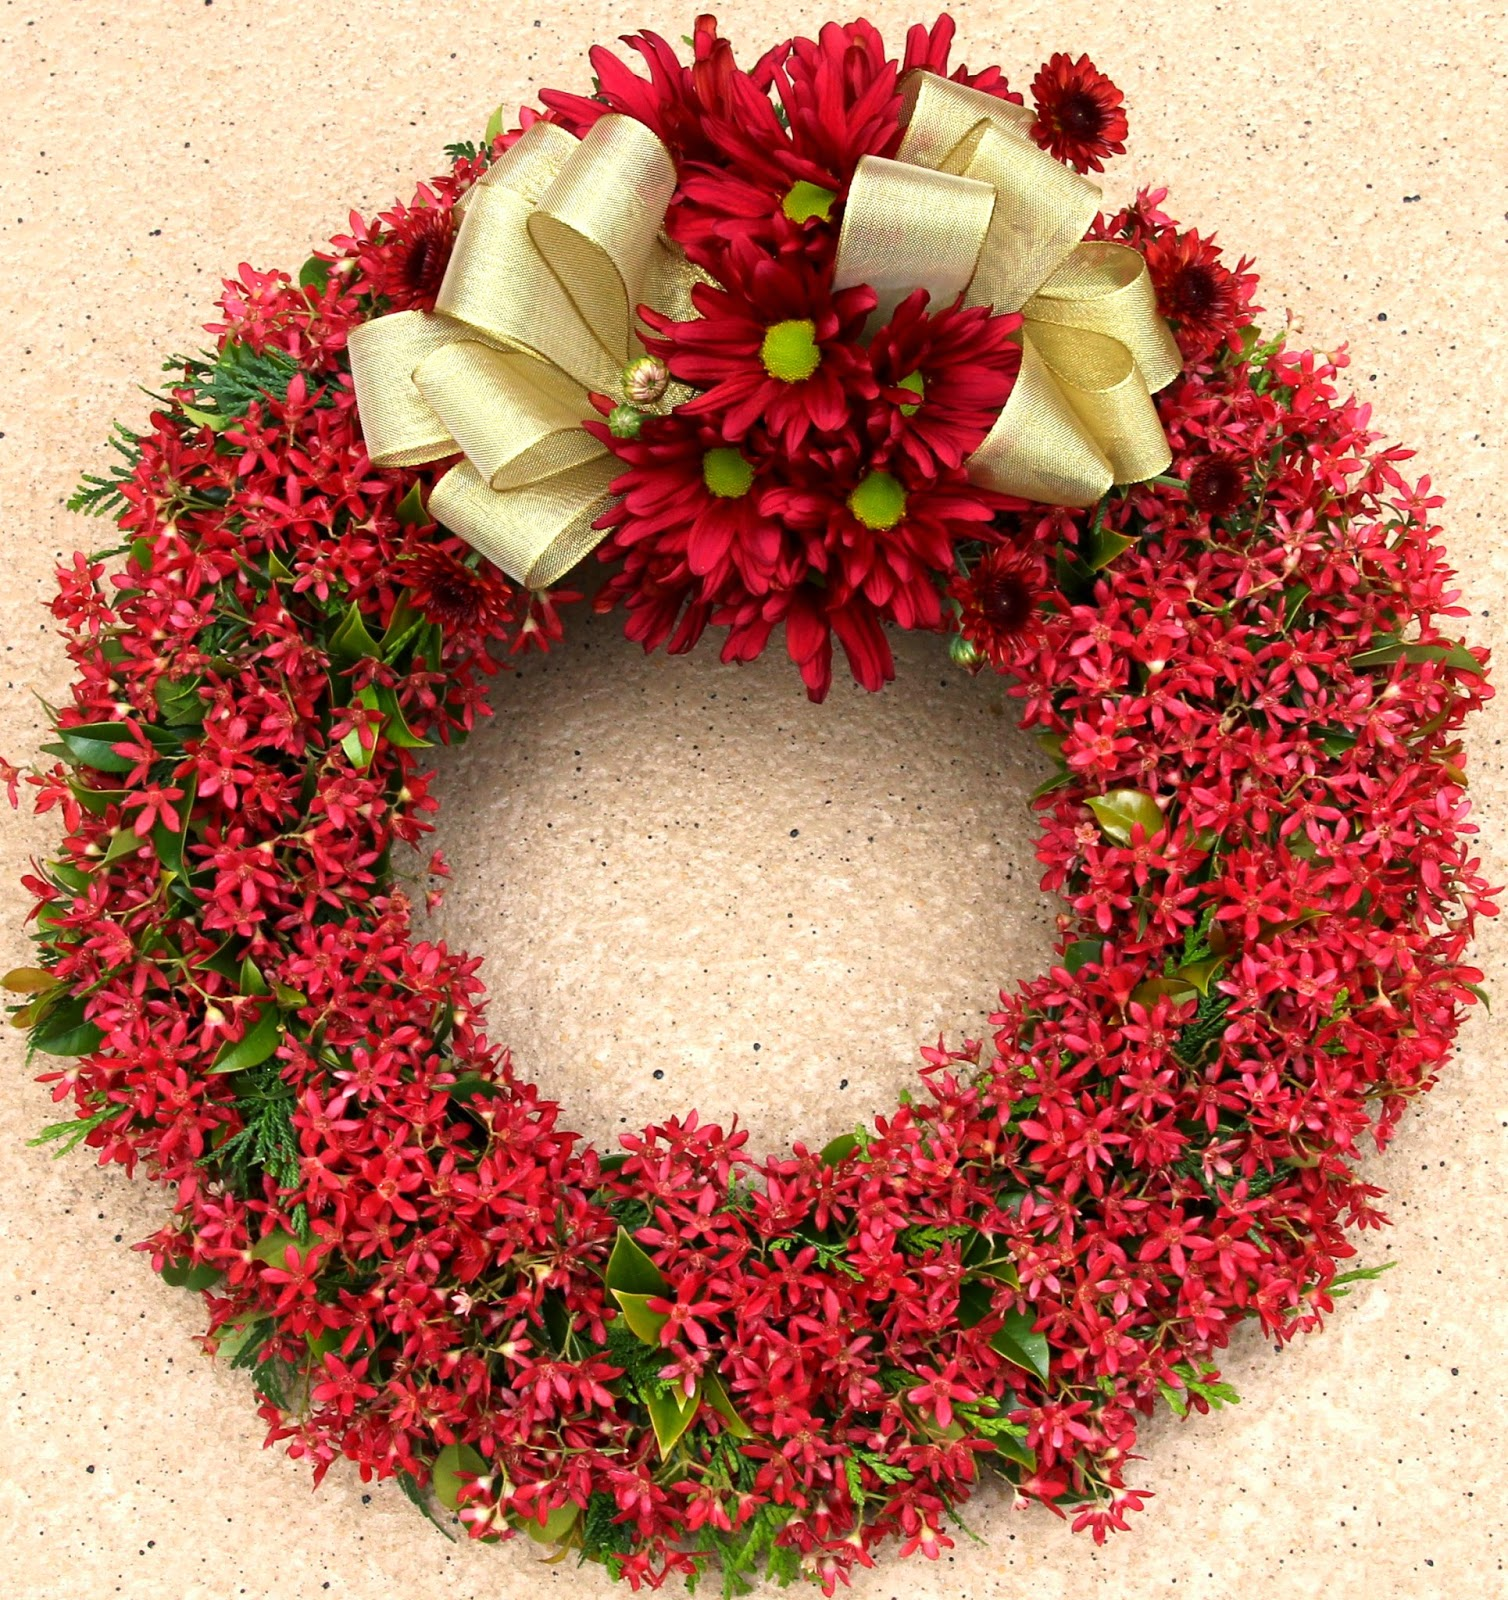 Families Celebrate On The Nearby Beaches With Traditional Food And Christmas Bush These Flowers Are Wonderful Mixed In Holiday Wreaths Or Used To Decorate